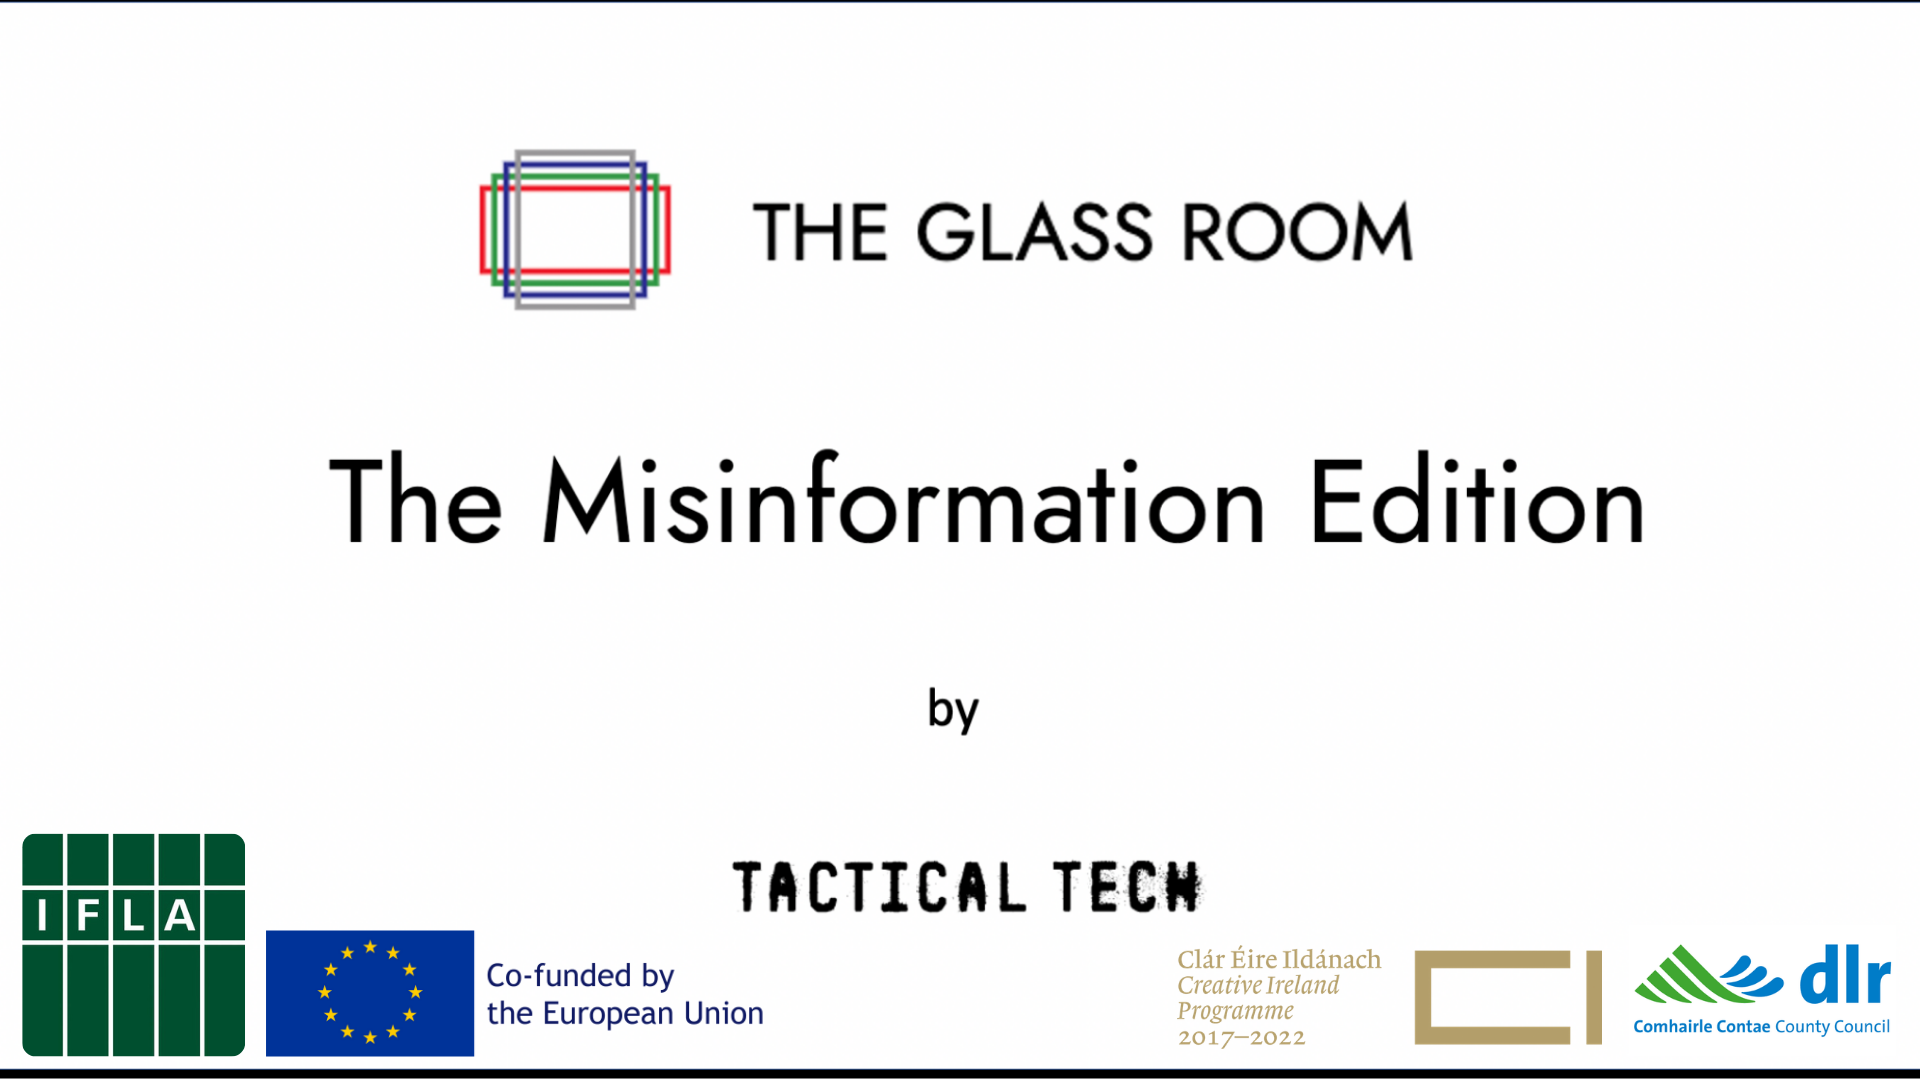 The Glass Room Misinformation Edition